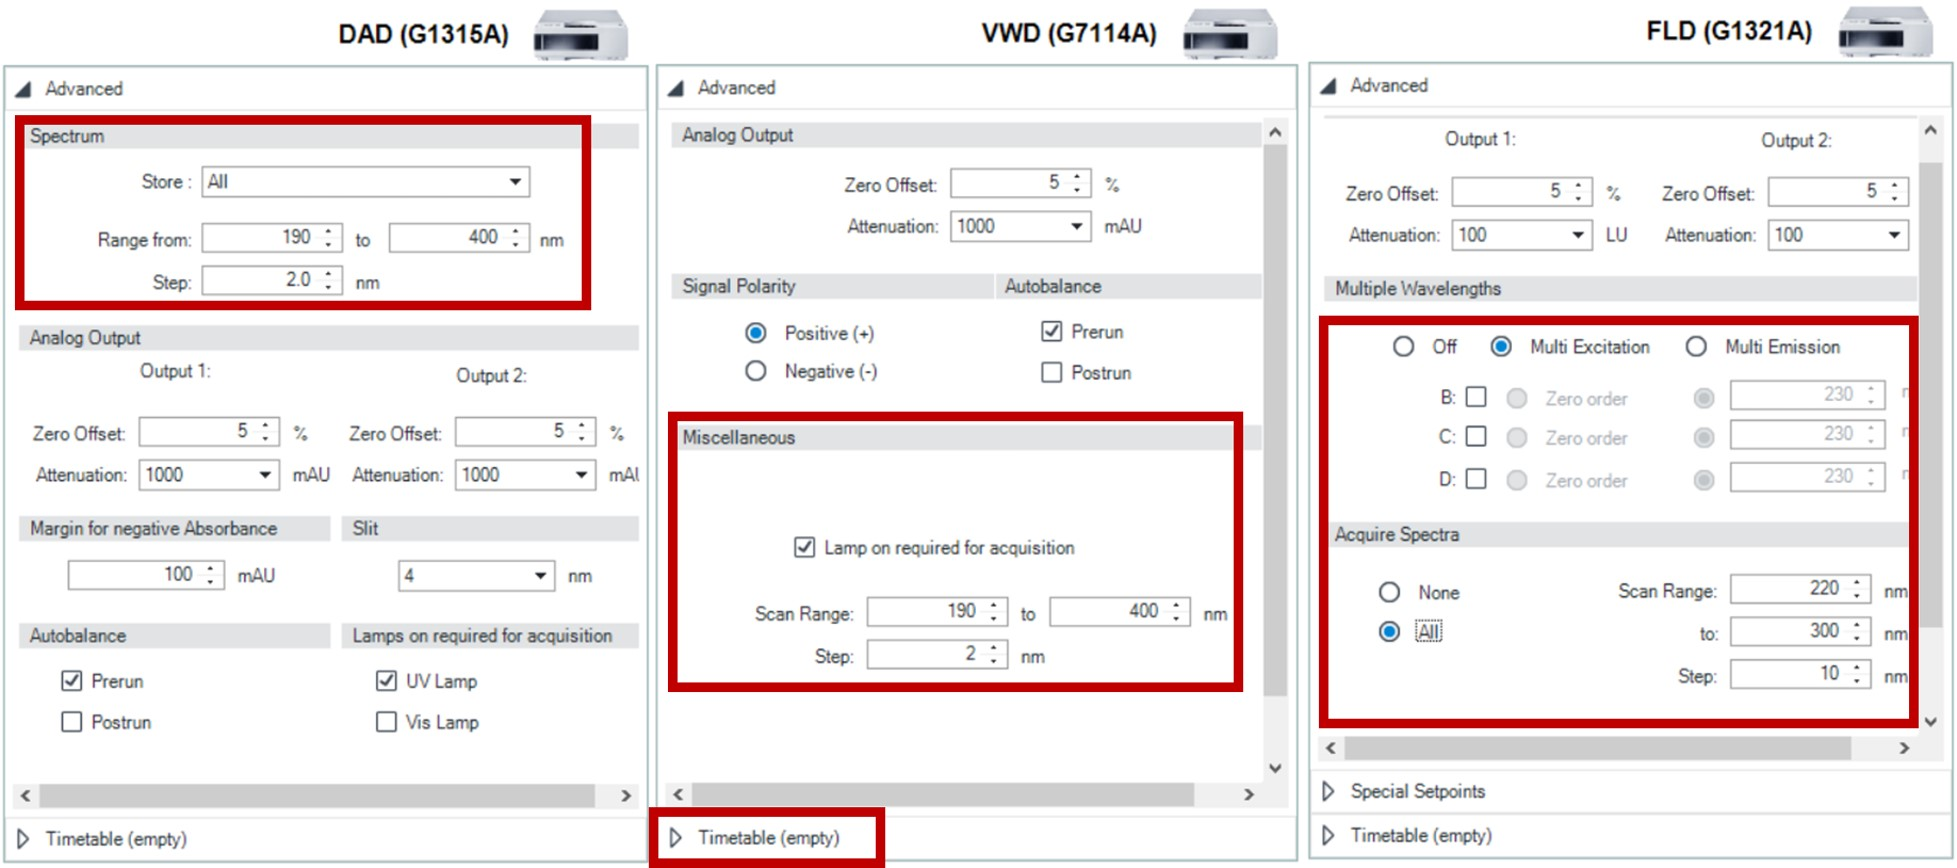 Figure 2 - Settings Overview